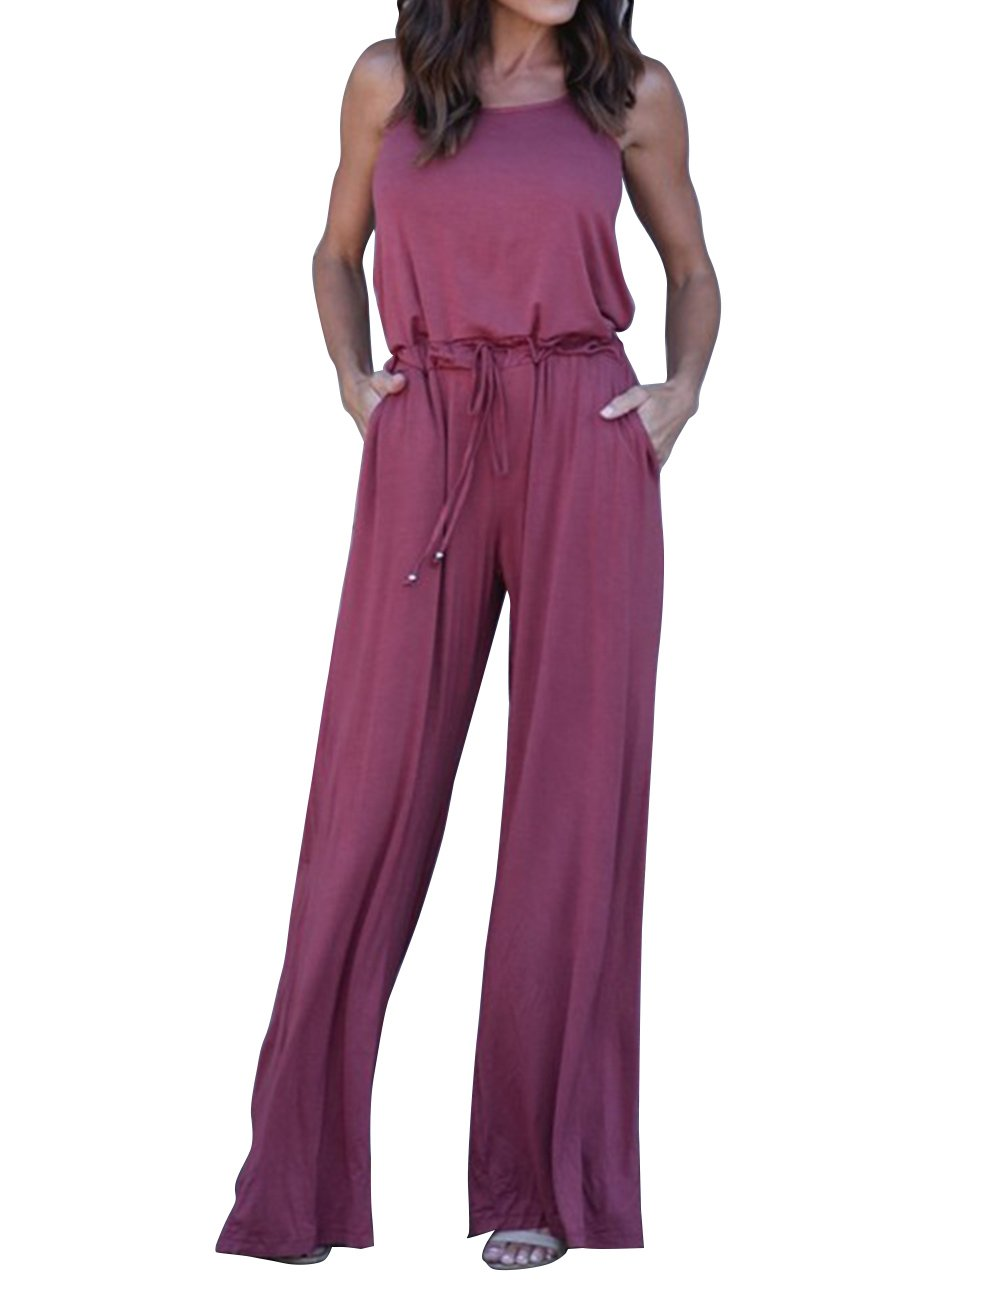 Hunleathy Women's Long Pants Jumpsuit Casual Sleeveless High Waist Romper Purple L